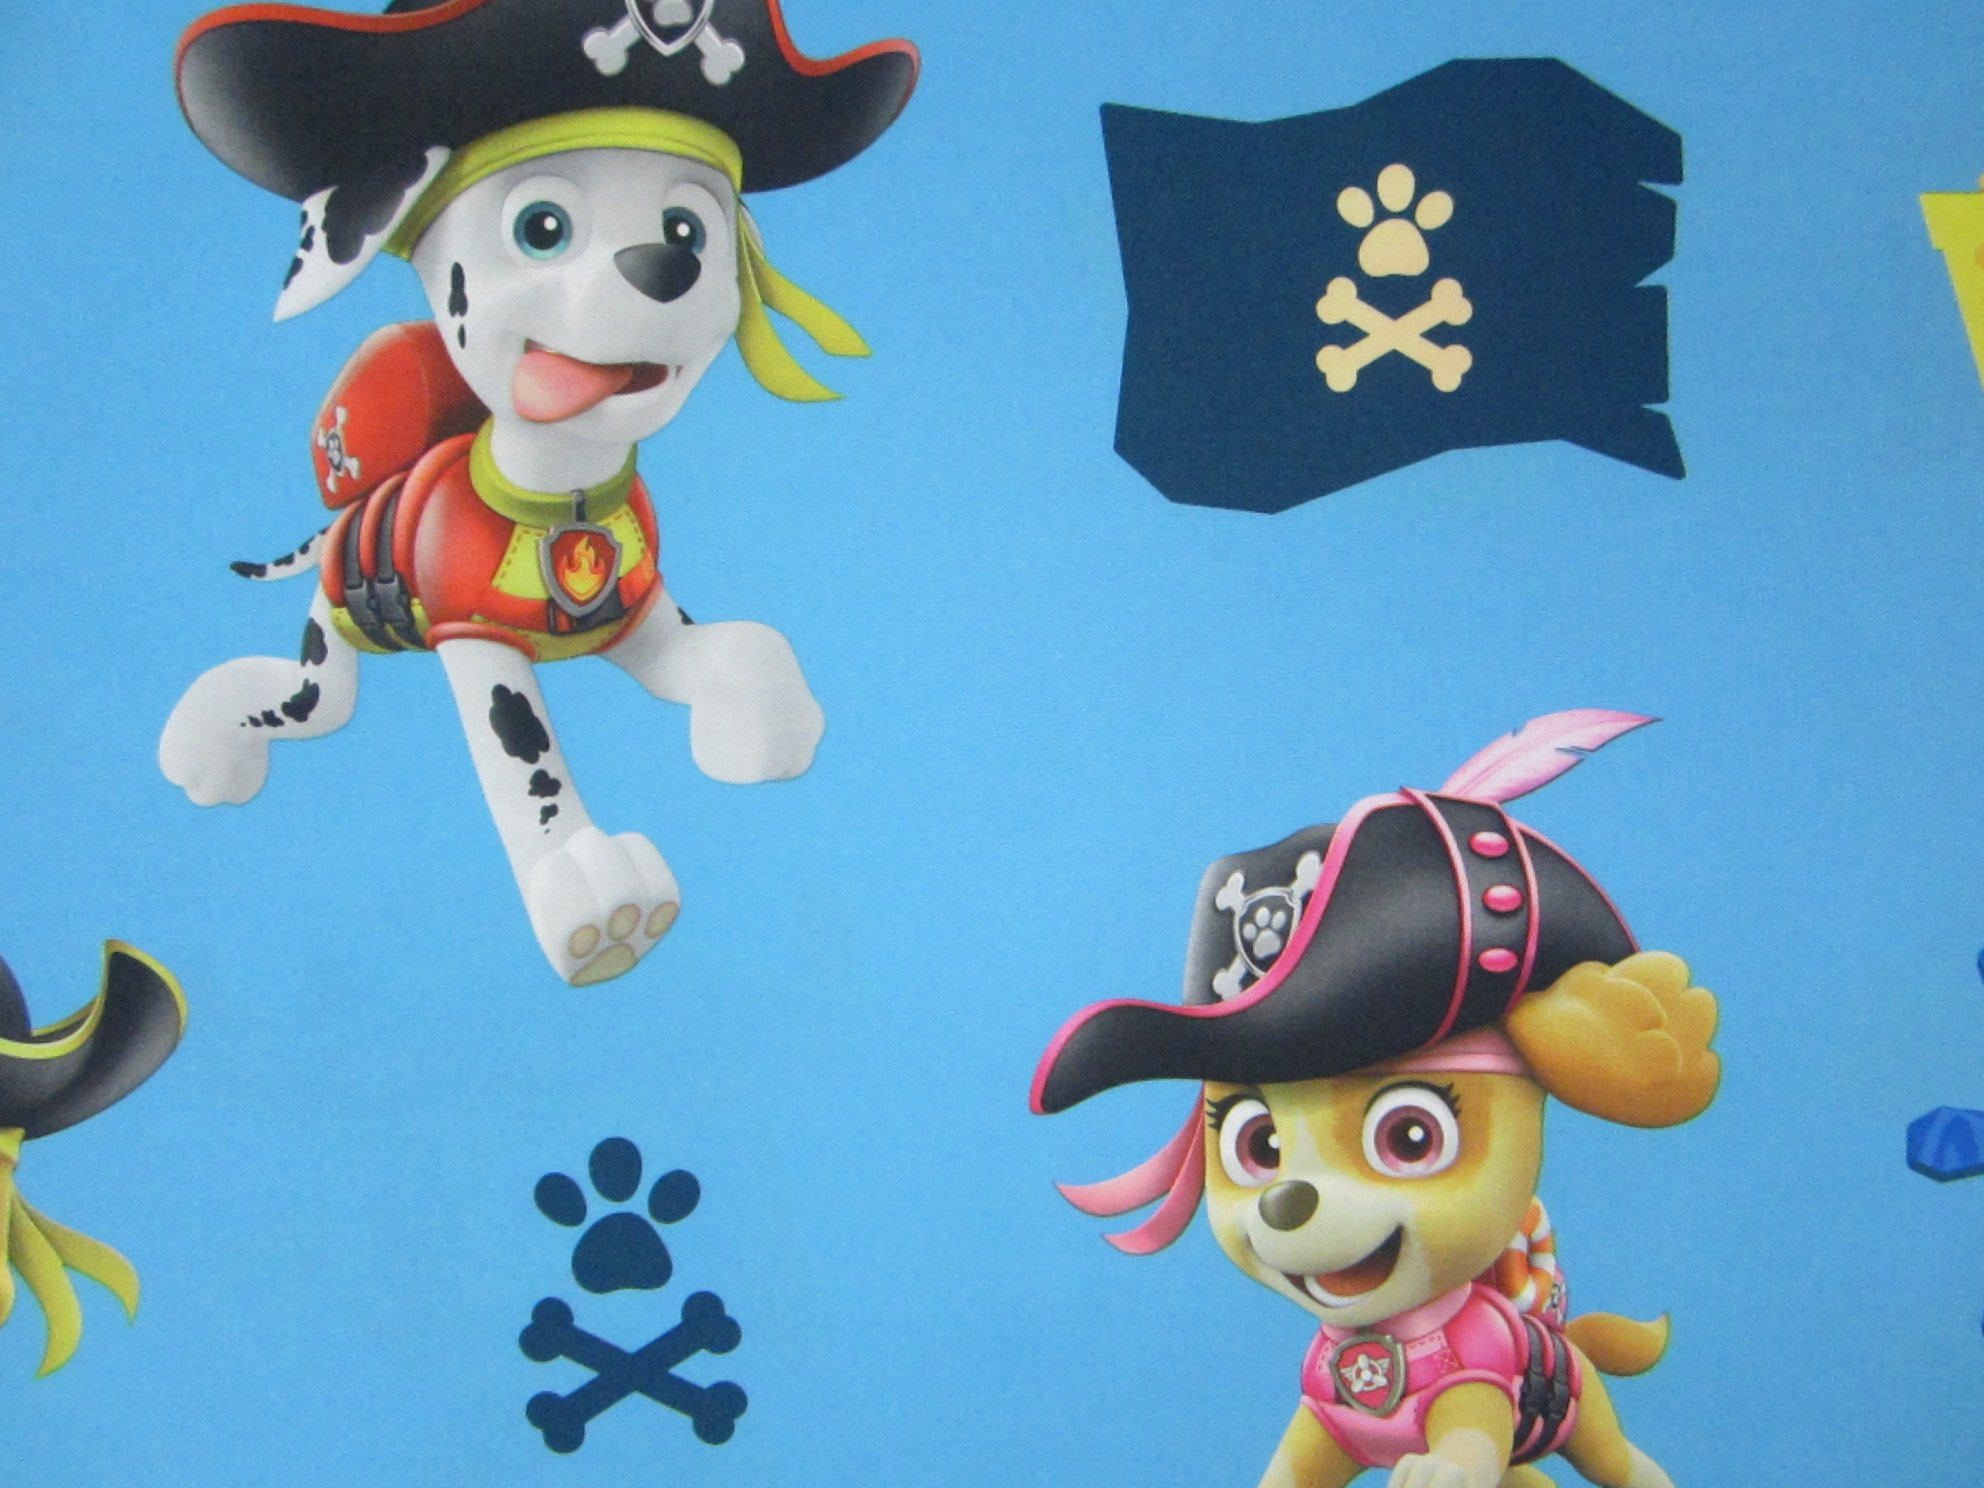 Paw Patrol Ahoy Me Pups 100% Polyester (FLAT SHEET ONLY) Size TWIN Boys Girls Kids Bedding